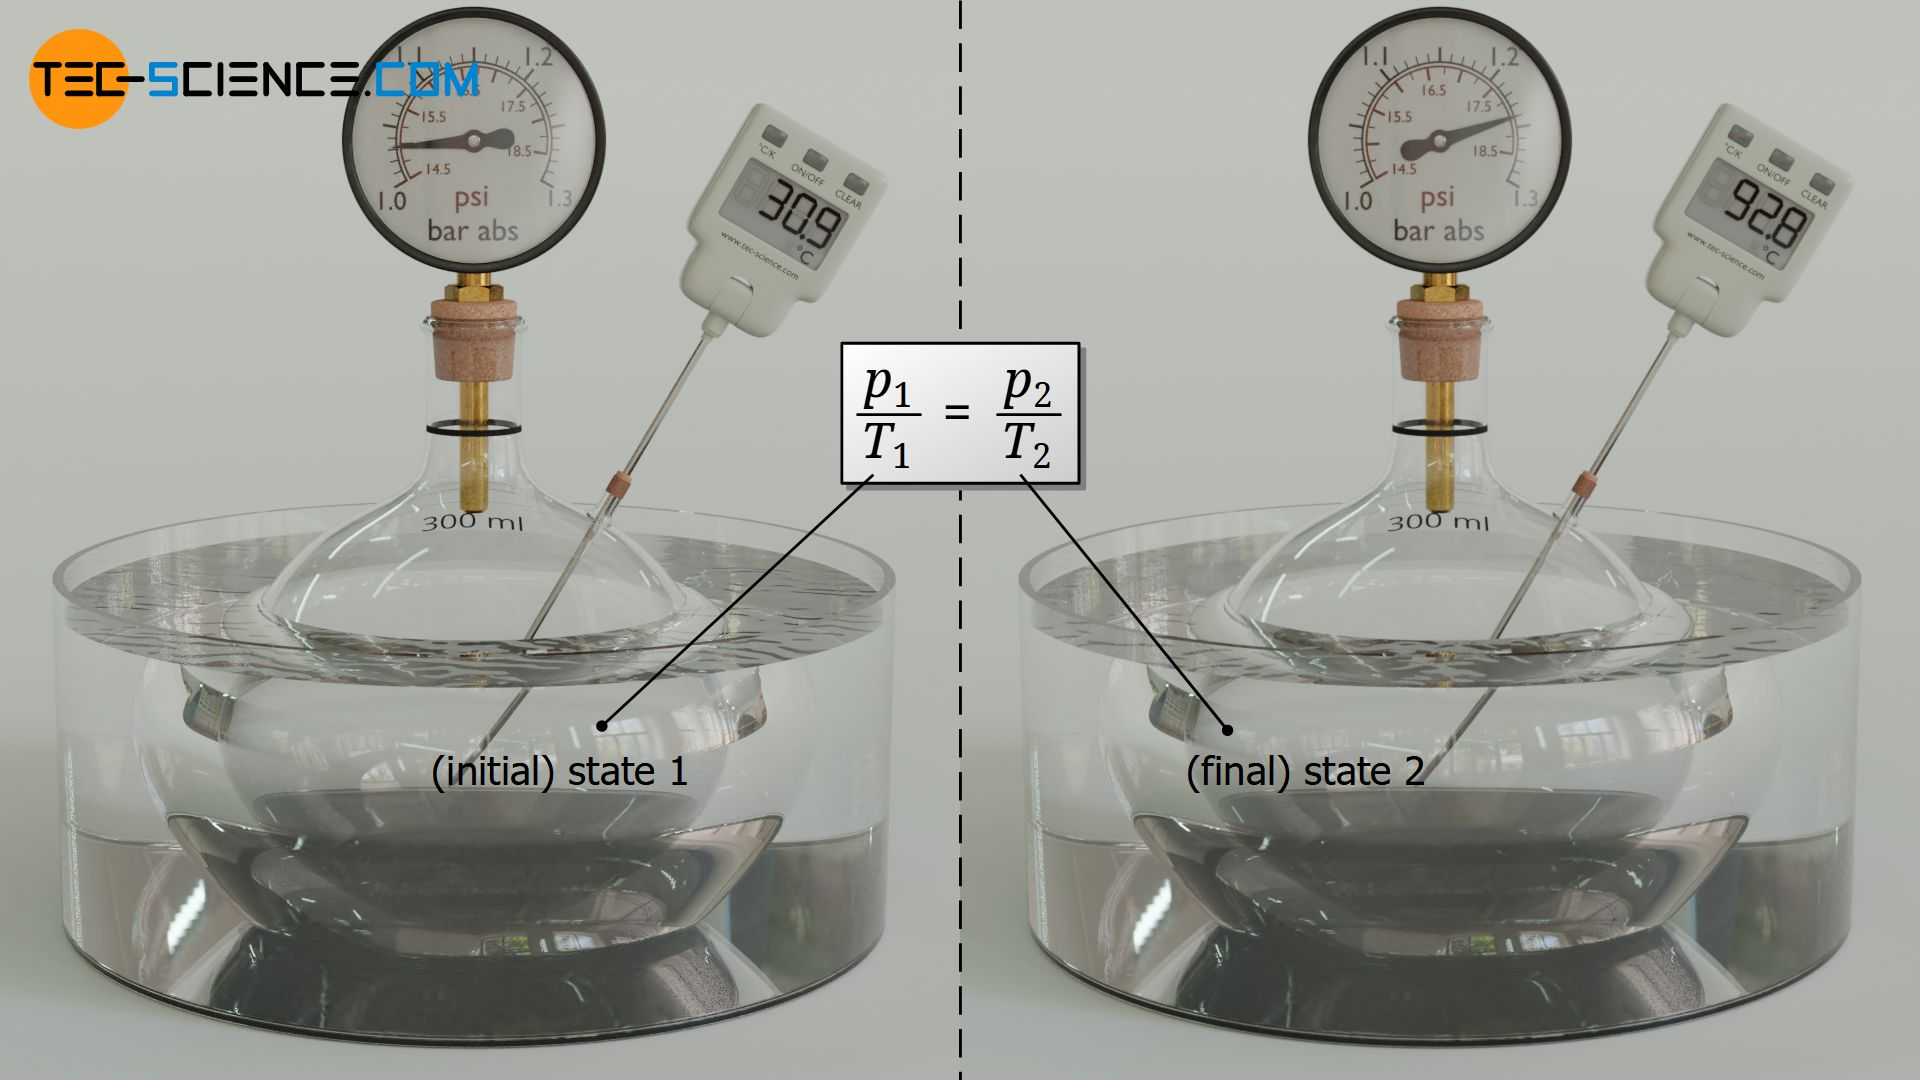 Linking two states of an isochoric process